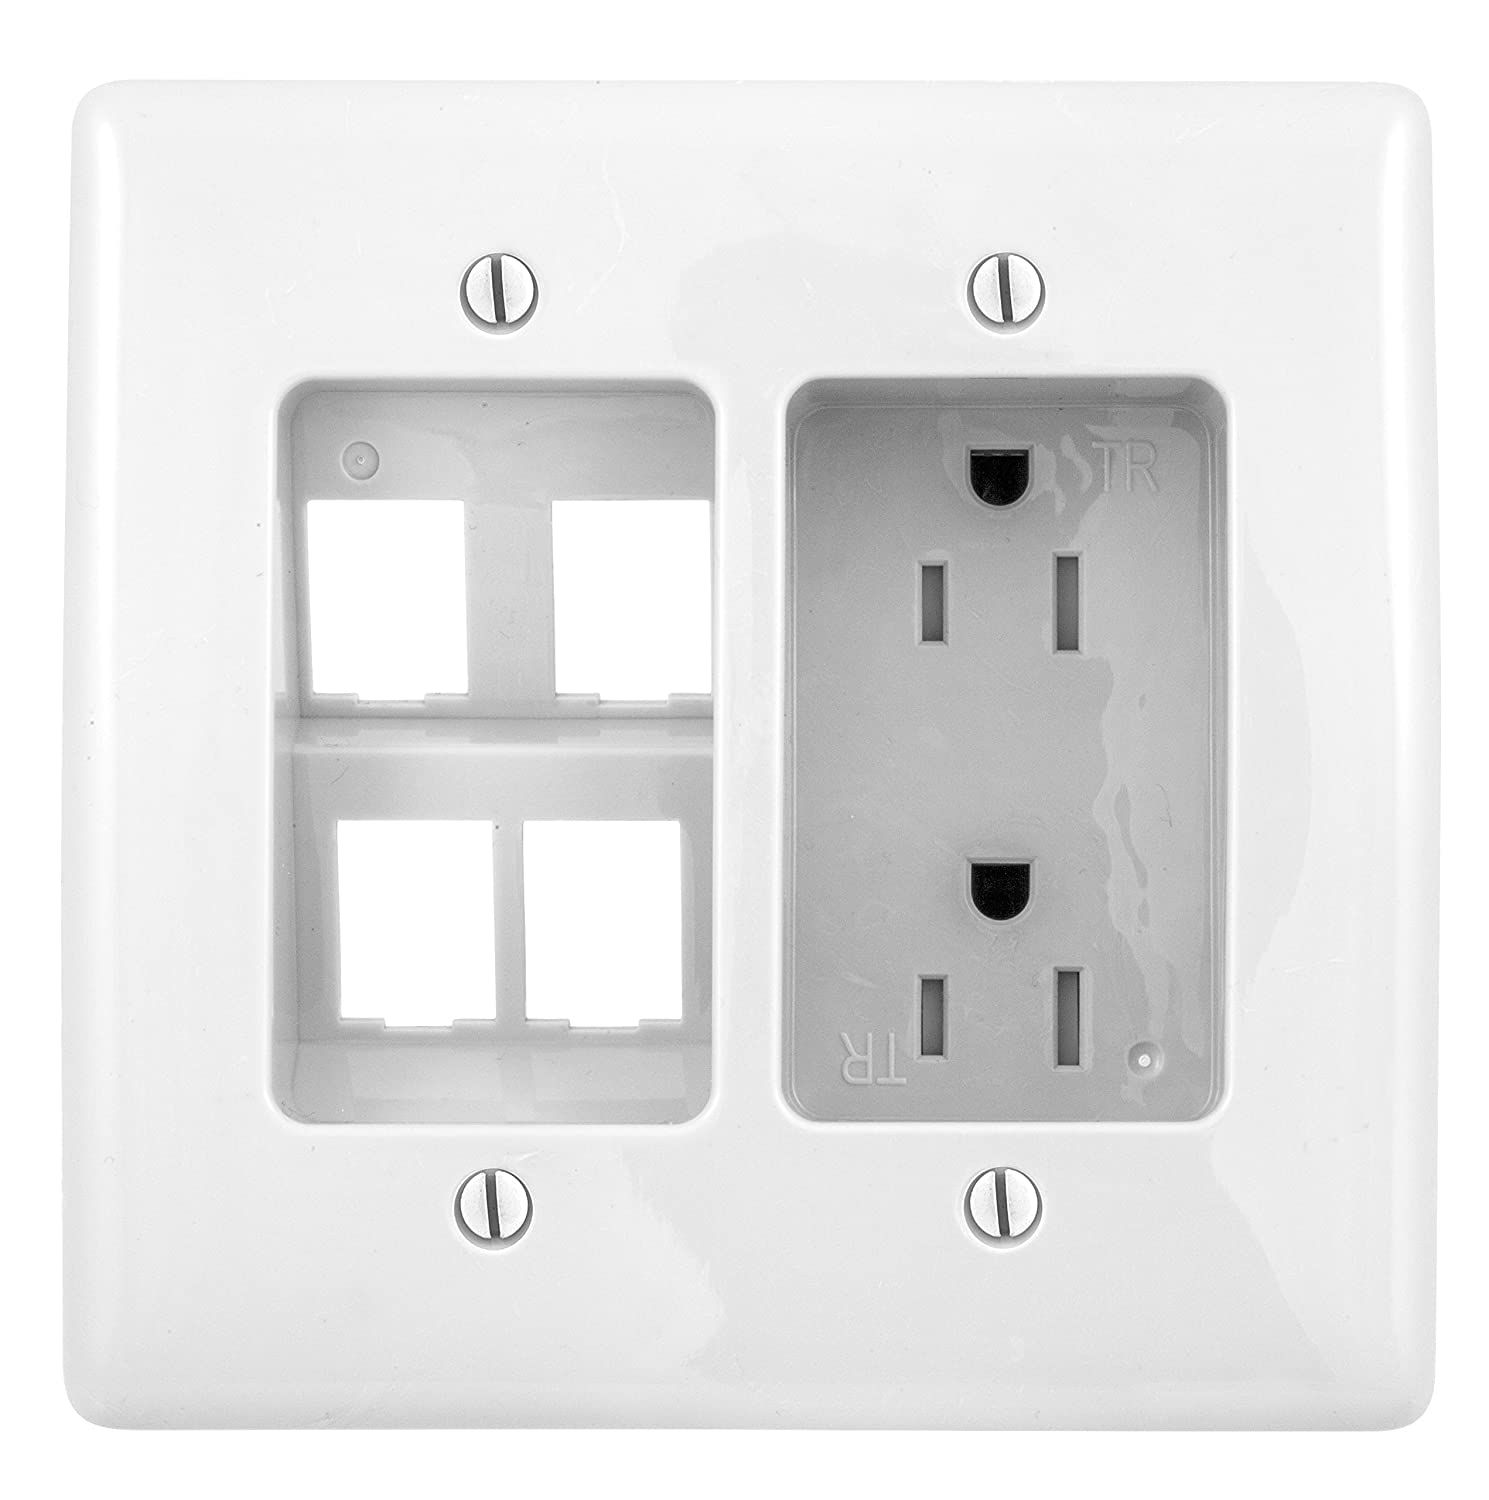 Light Almond Bryant Electric RR1512LA 2-Gang Recessed TV Connection Outlet Plate with 15 Amp 125V Tamper-Resistant Duplex Receptacle with One Pass-Thru Opening